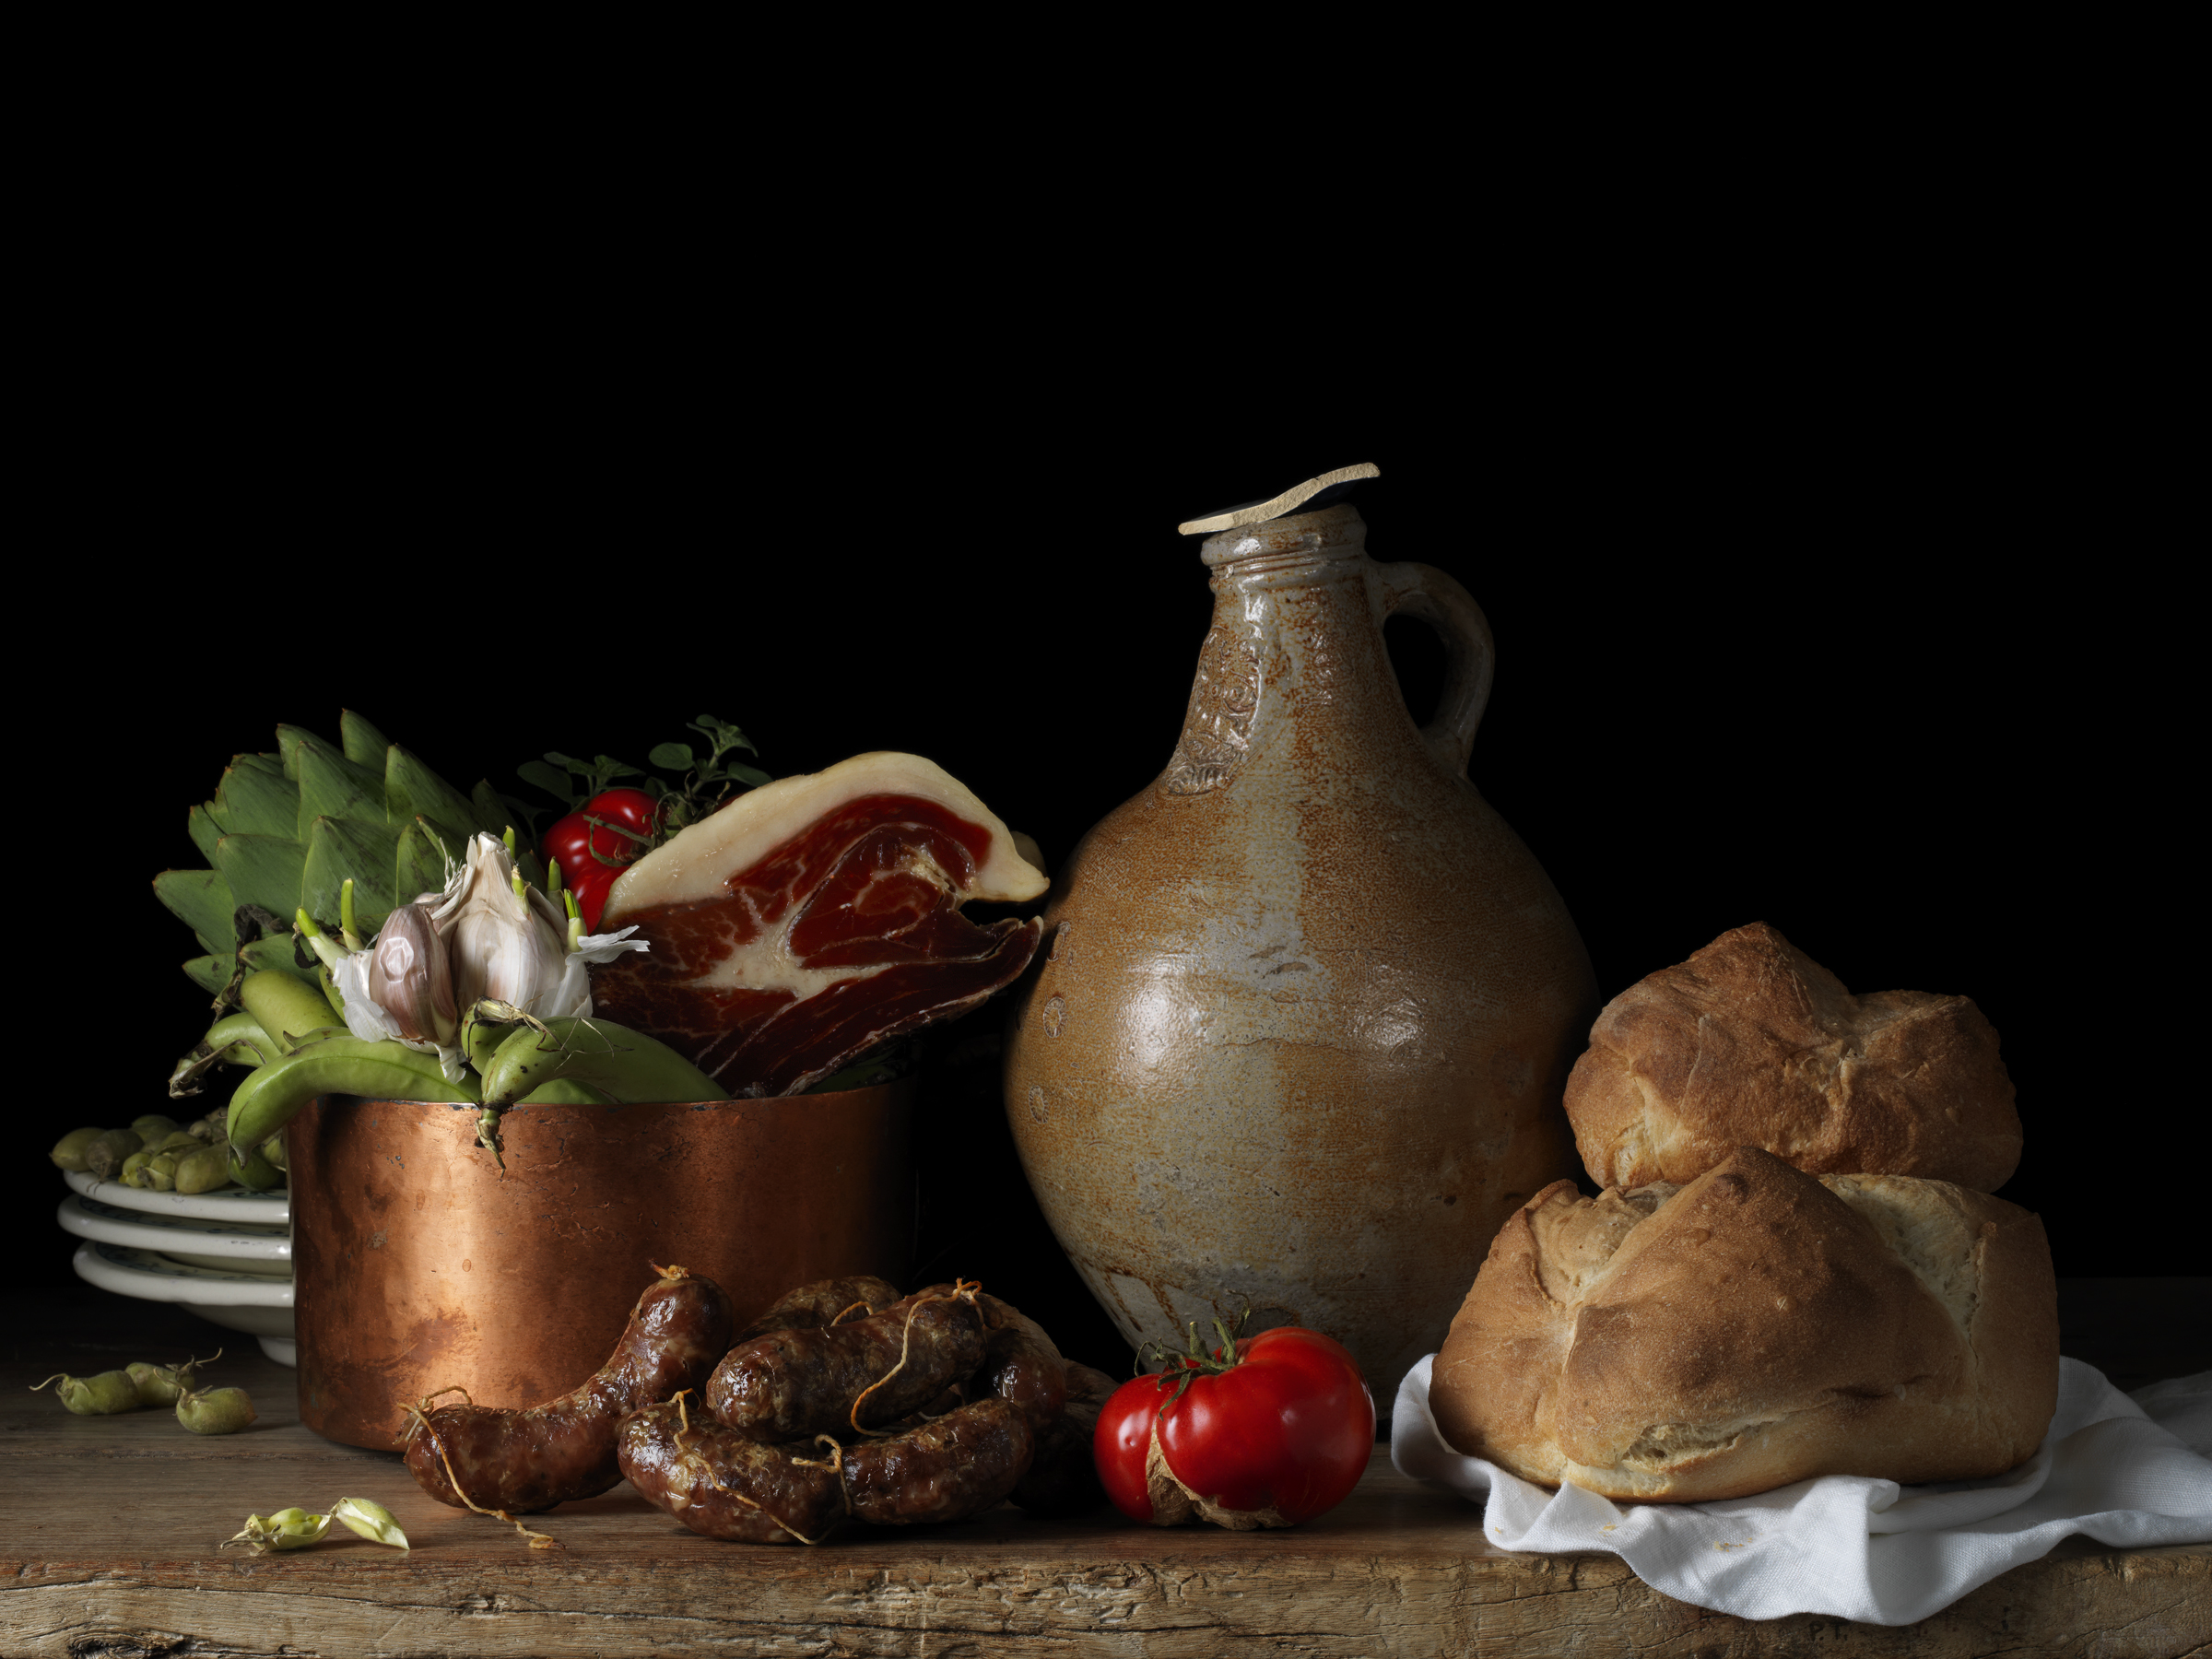 Still Life With Jamón Ibérico, After L.M., 2014